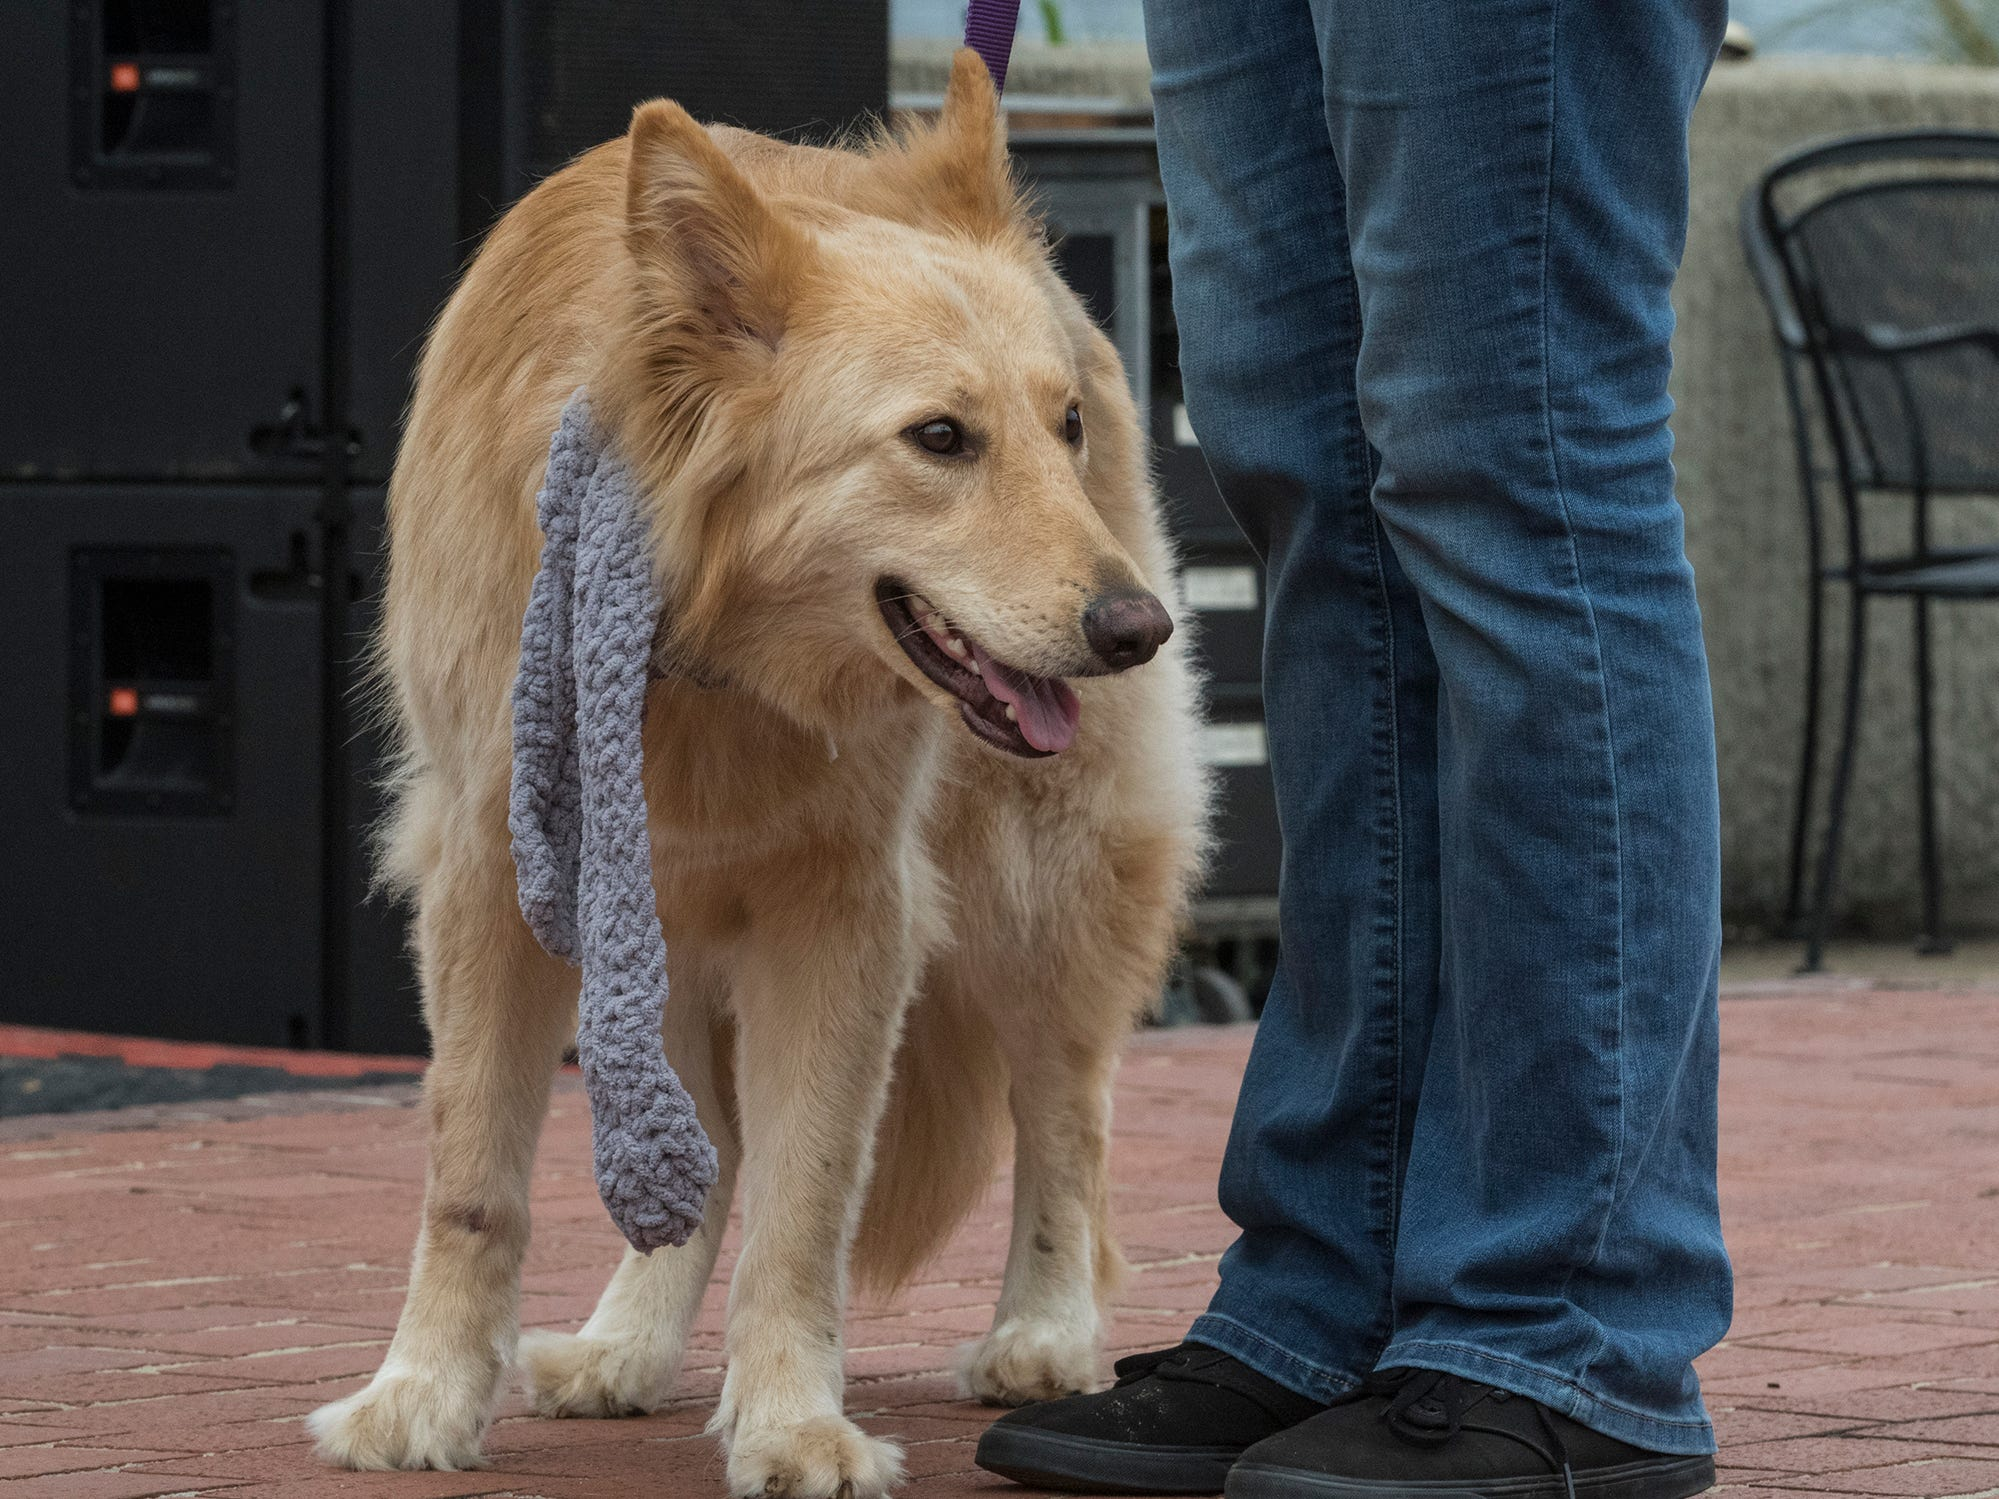 Woofstock was held at the Rivermarket in downtown Monroe, La. on March 2. The event was featured live music and vendors with proceeds going to S.O.S.